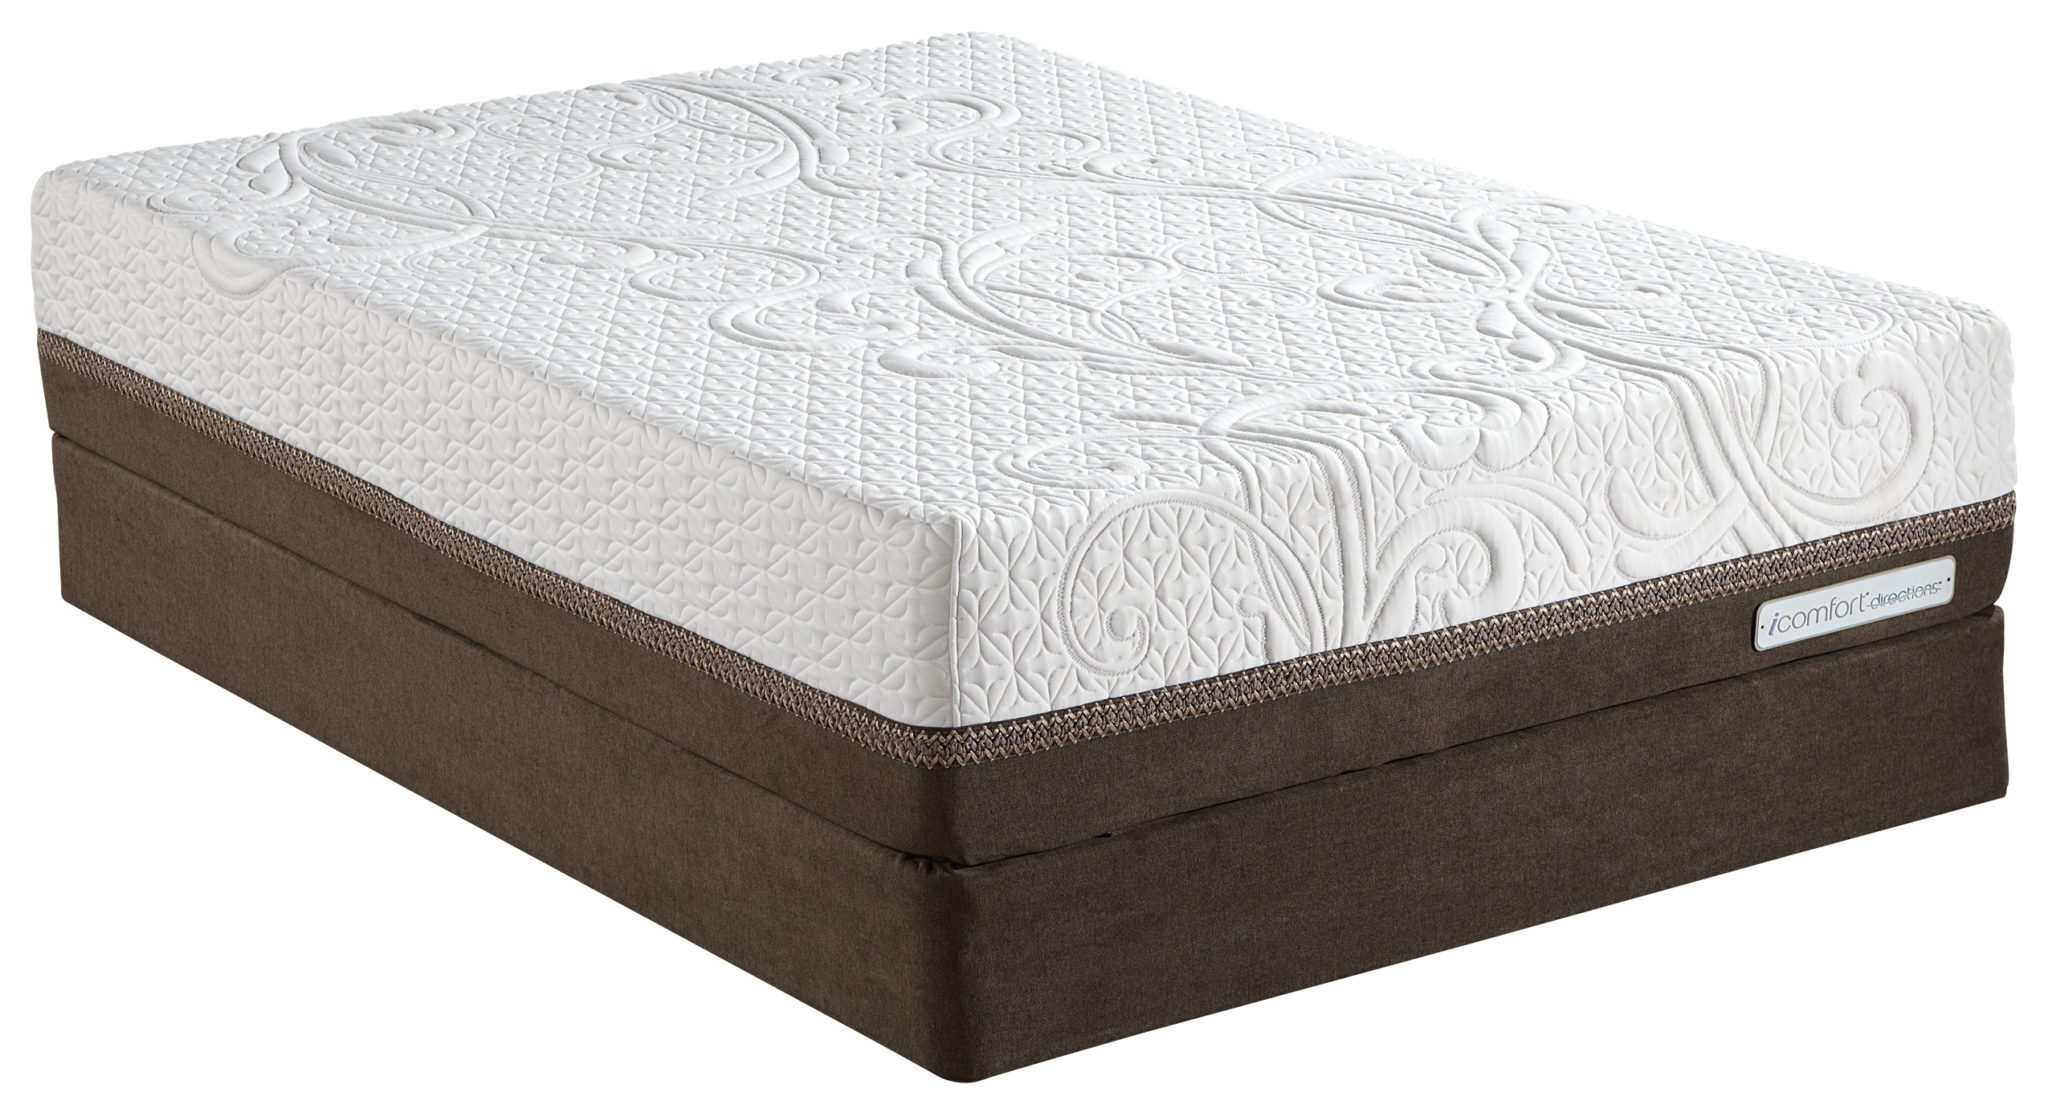 tempactiv icomfort country bed sleep canada mattress i tempactivtm